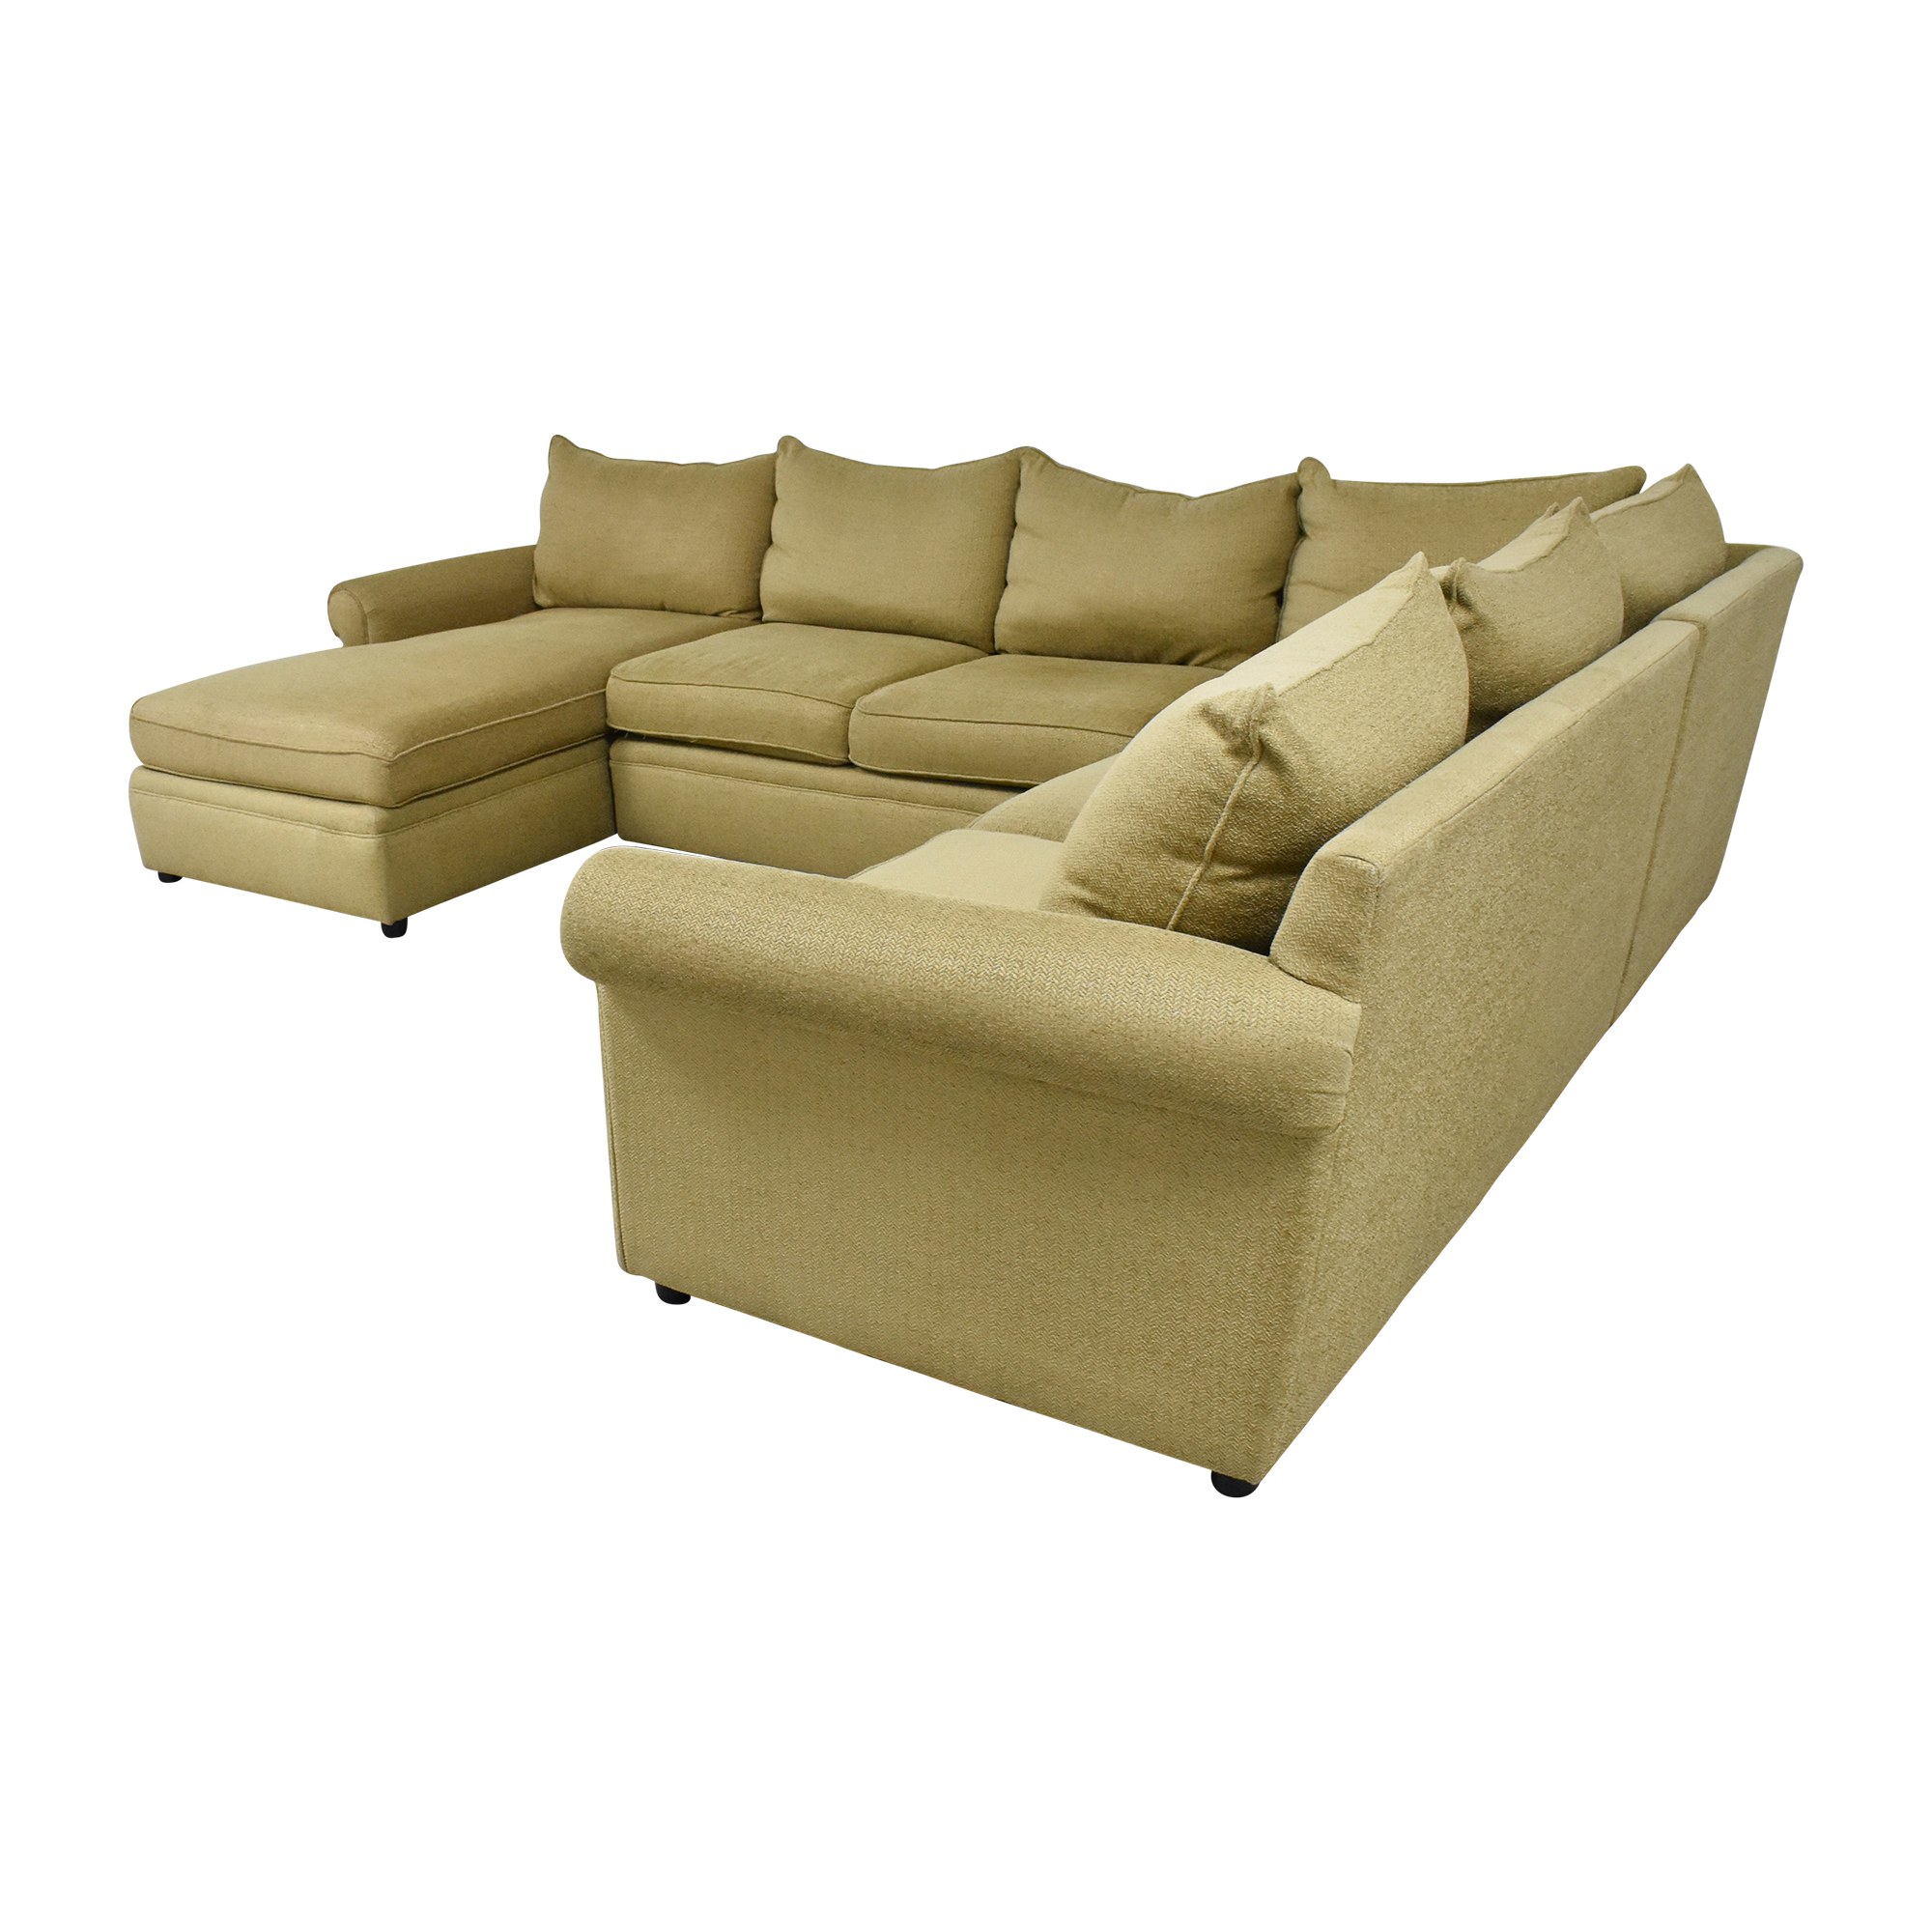 Domain Home Domain Home Sectional Sofa with Chaise used